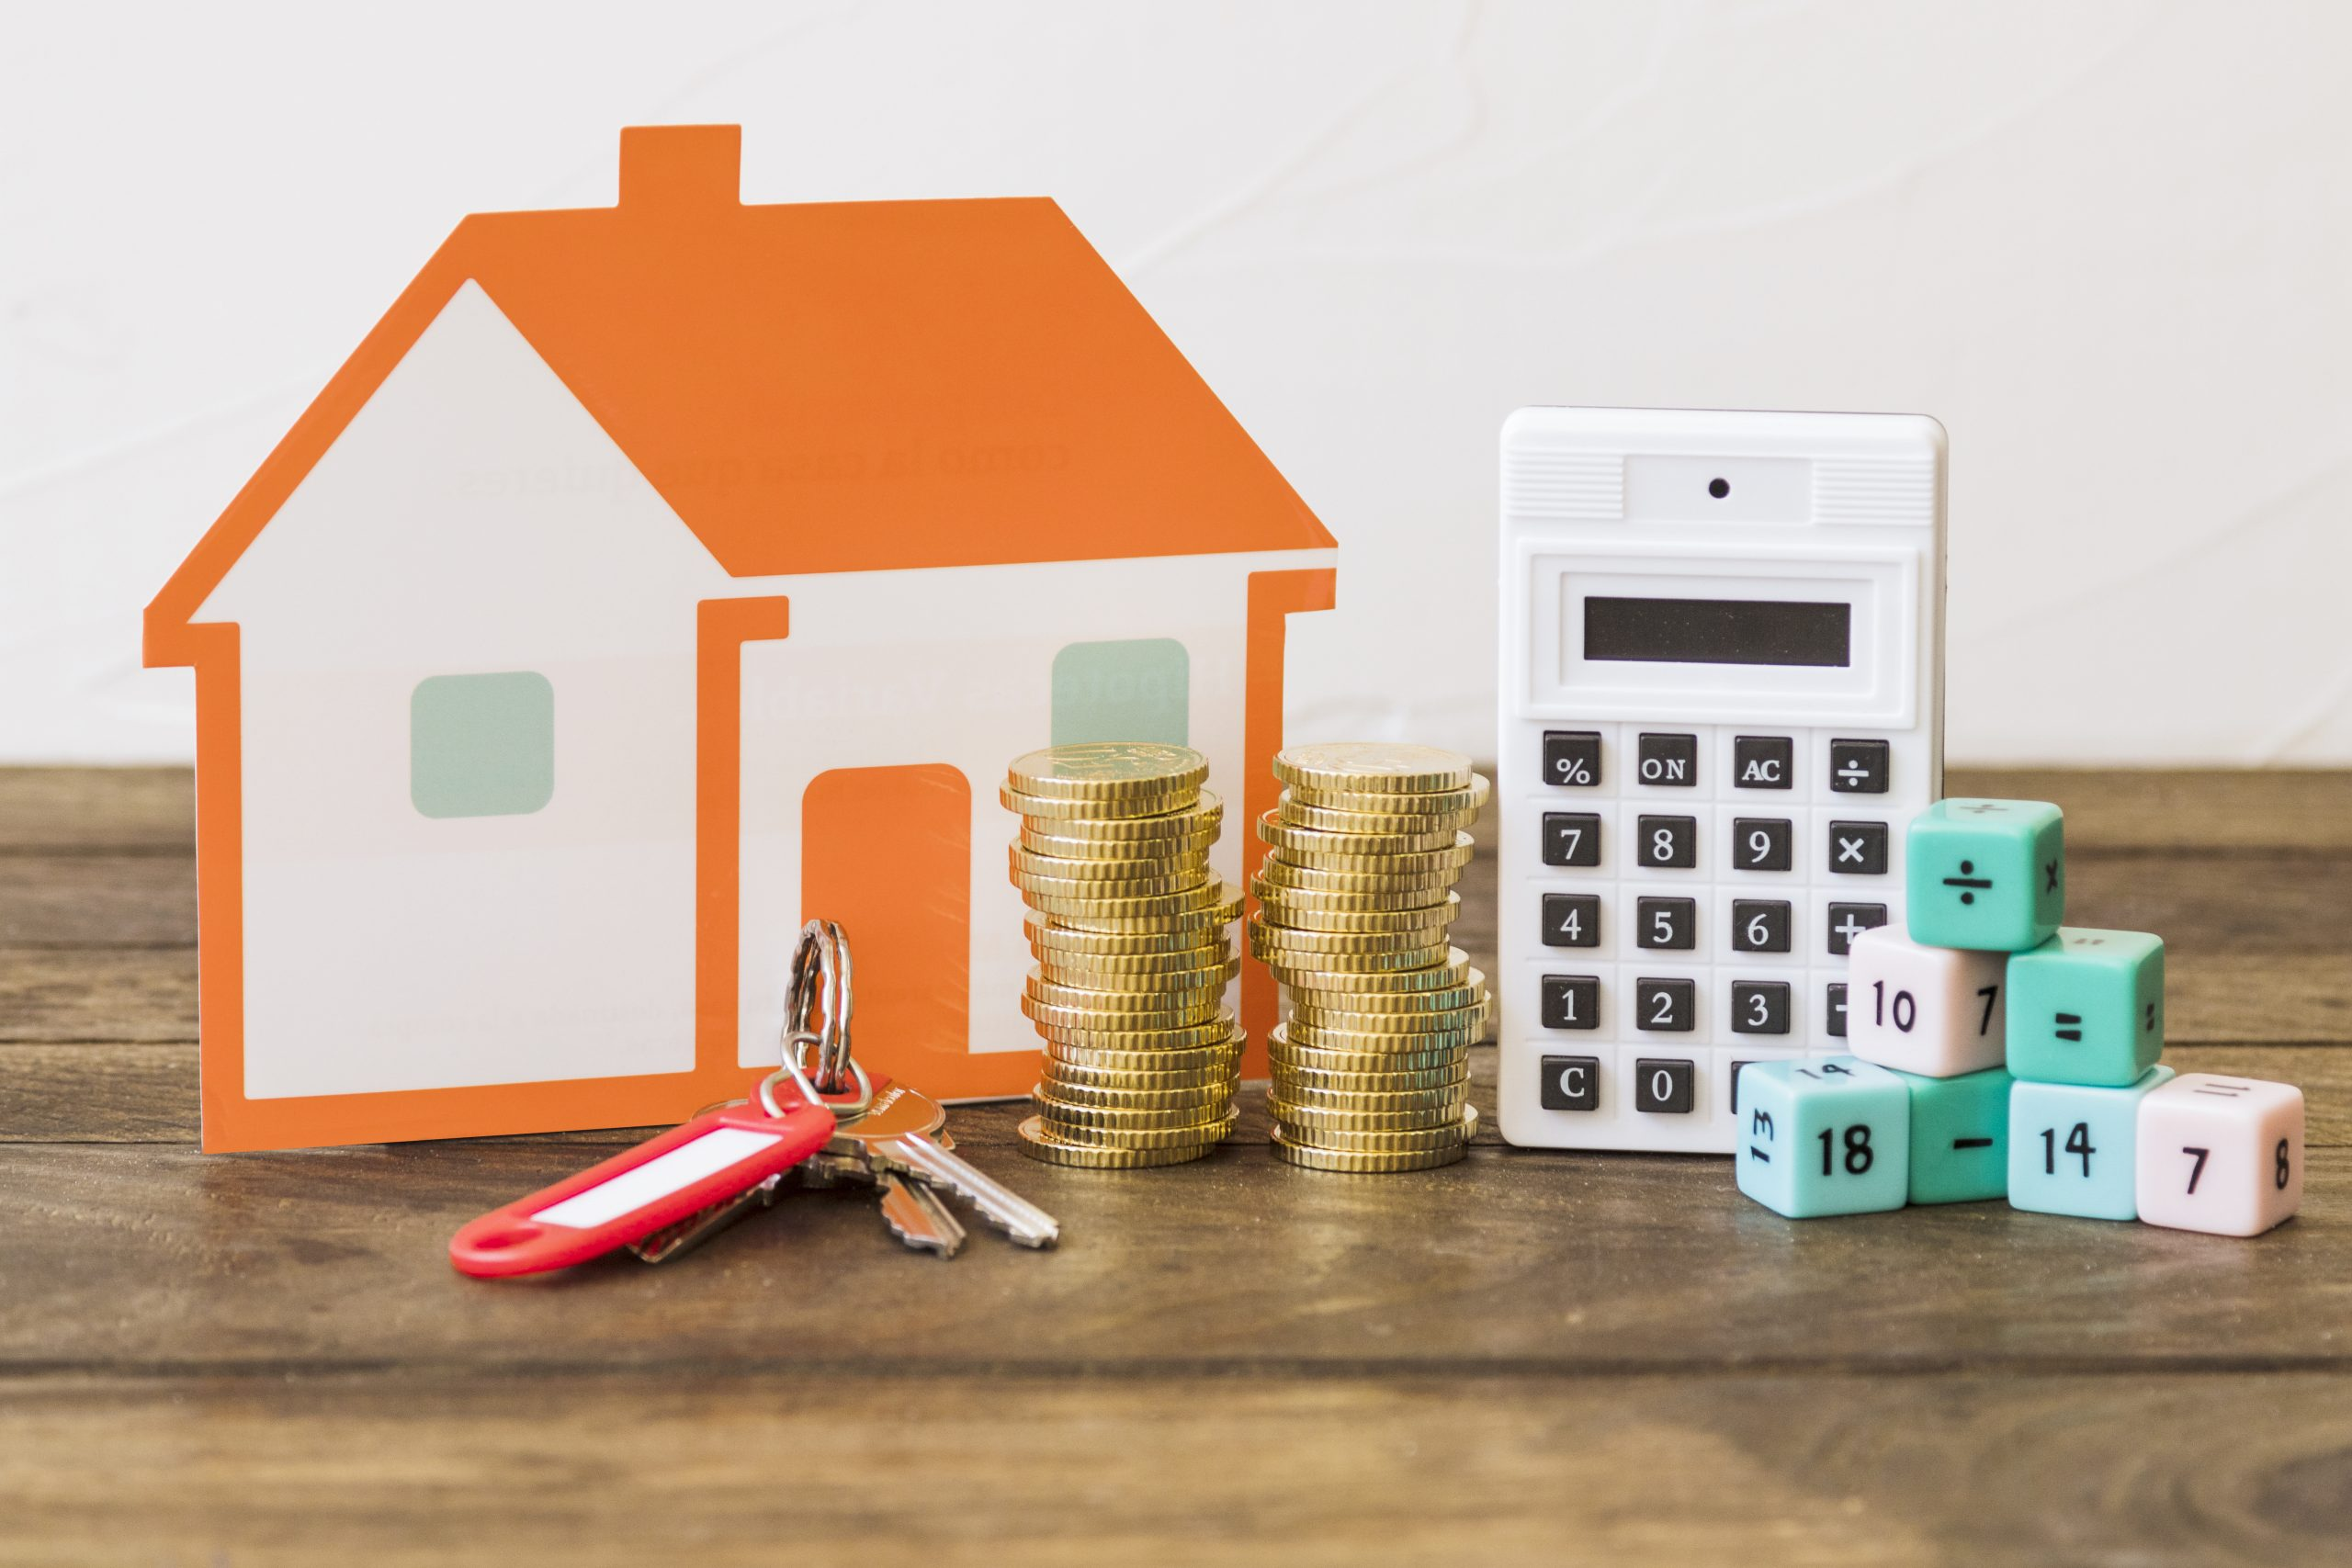 Paper house with a key, stack of coins and calculator